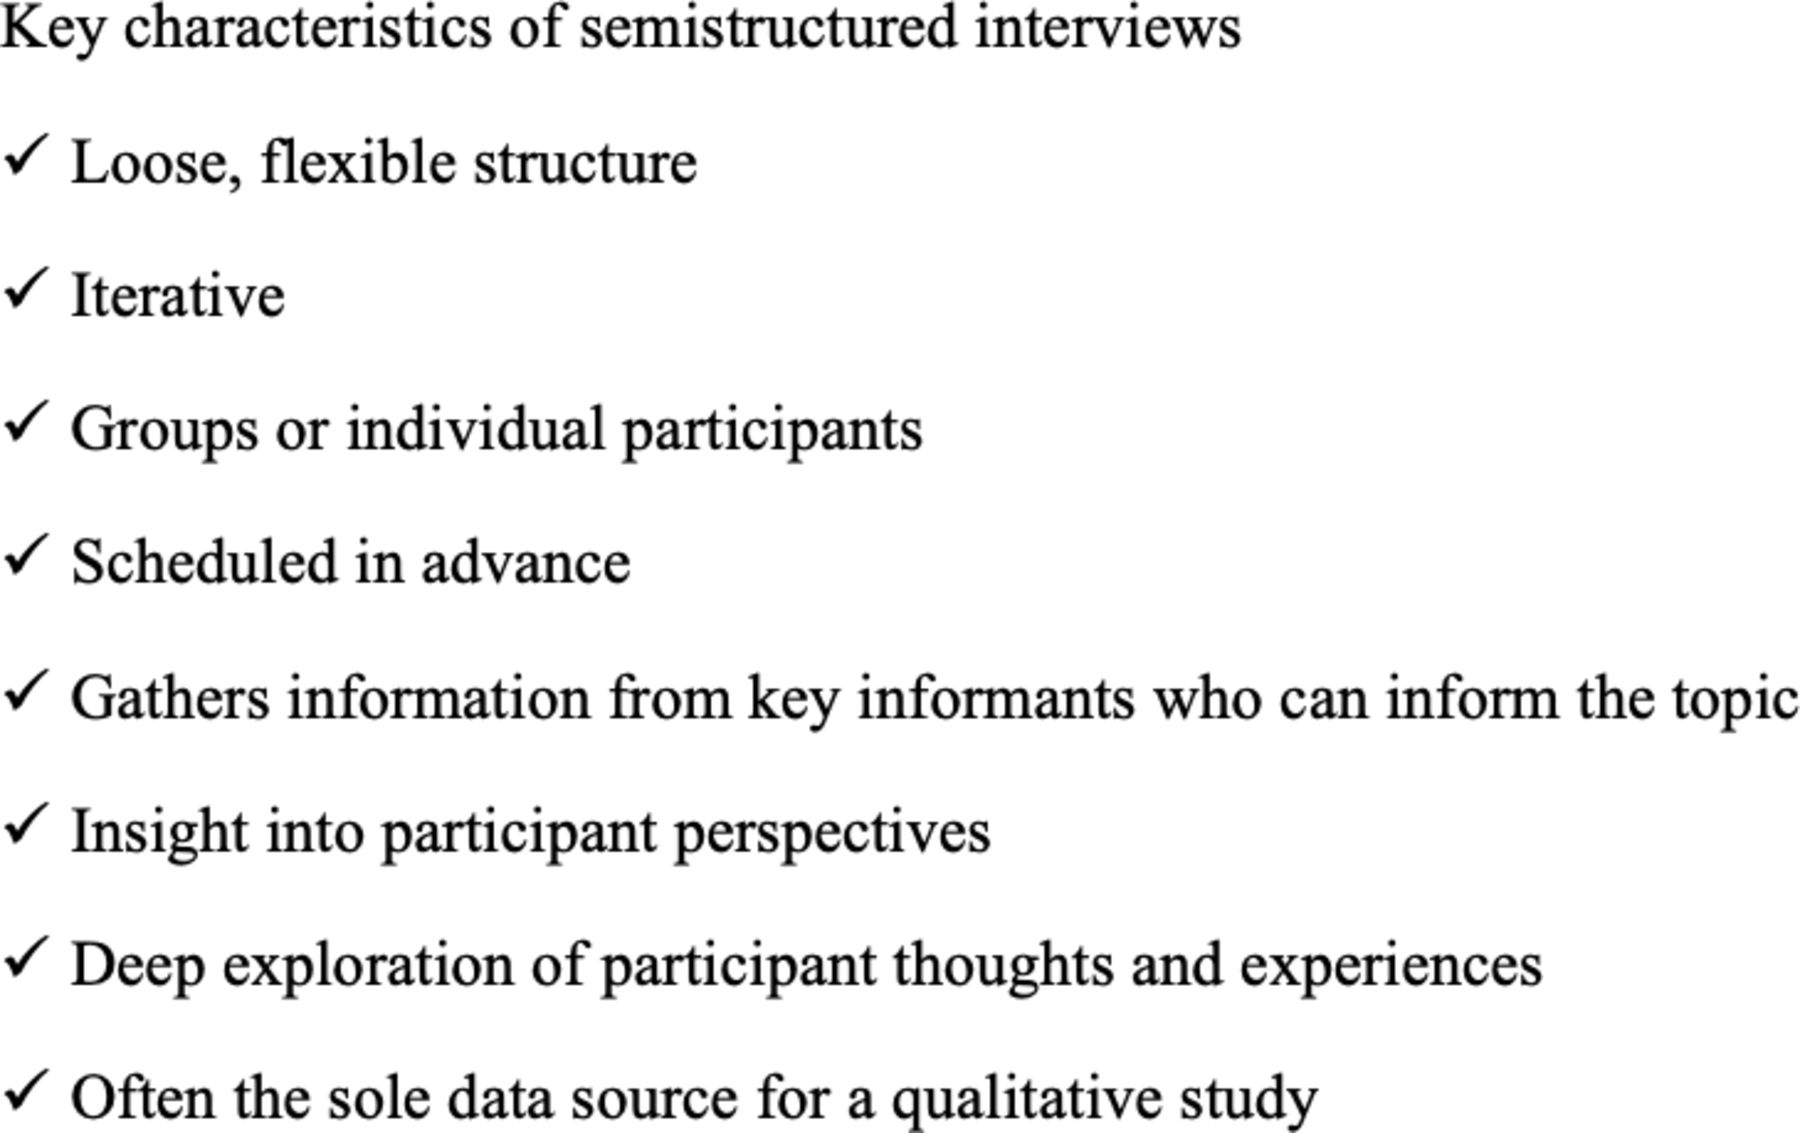 semistructured interviewing in primary care research  a balance of relationship and rigour